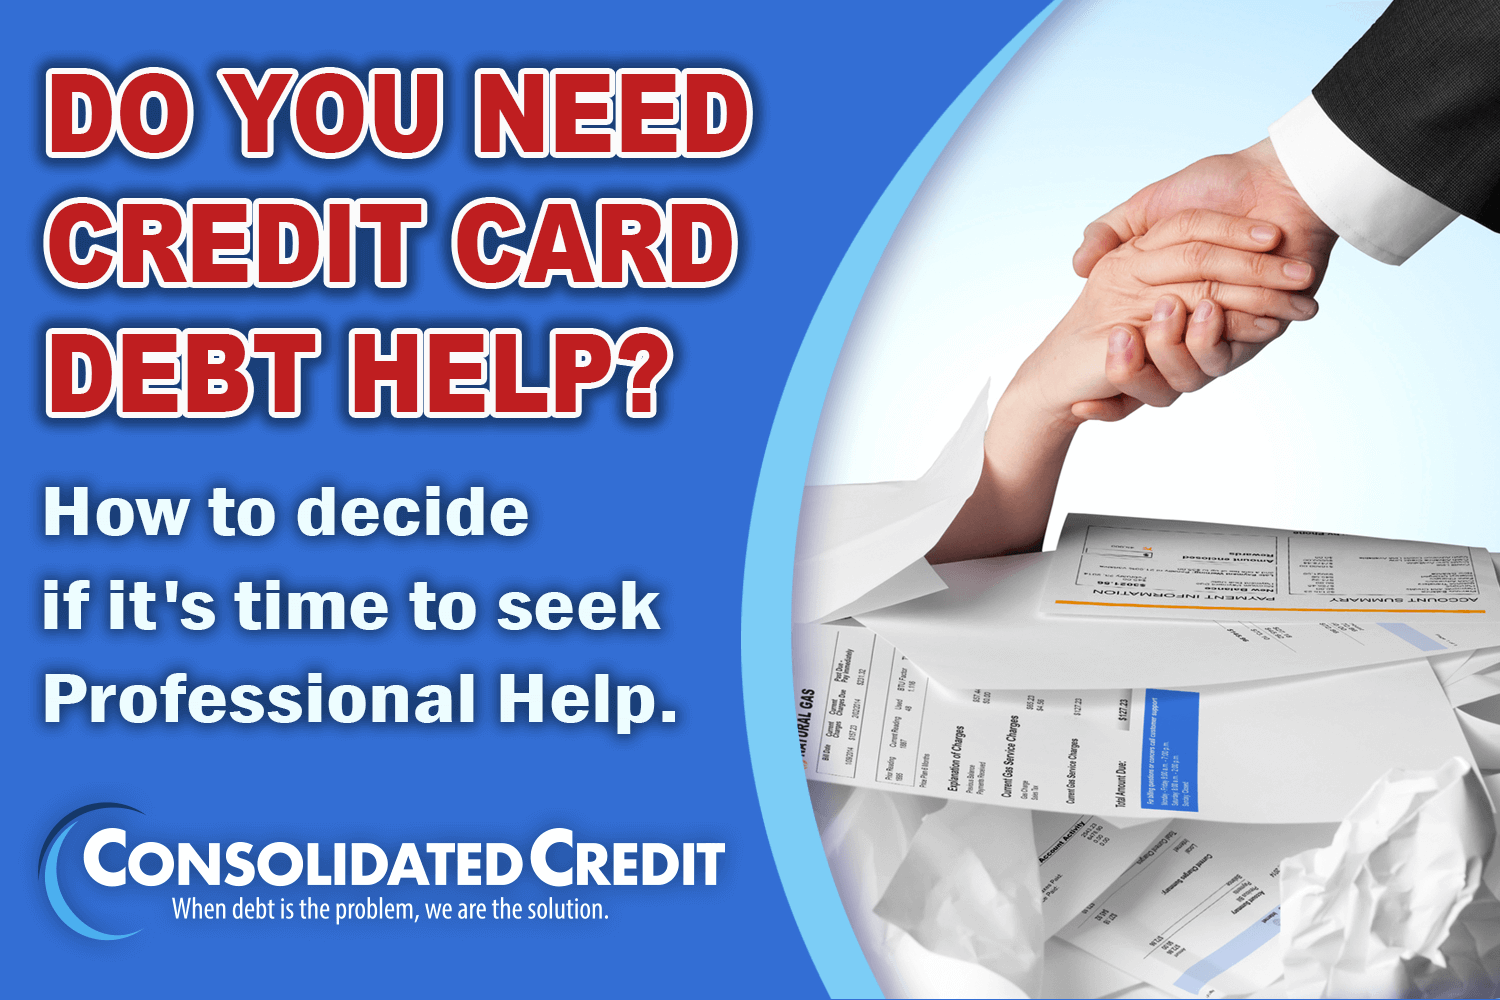 Do you need credit card debt help? How to decide if it's time to seek professional help.